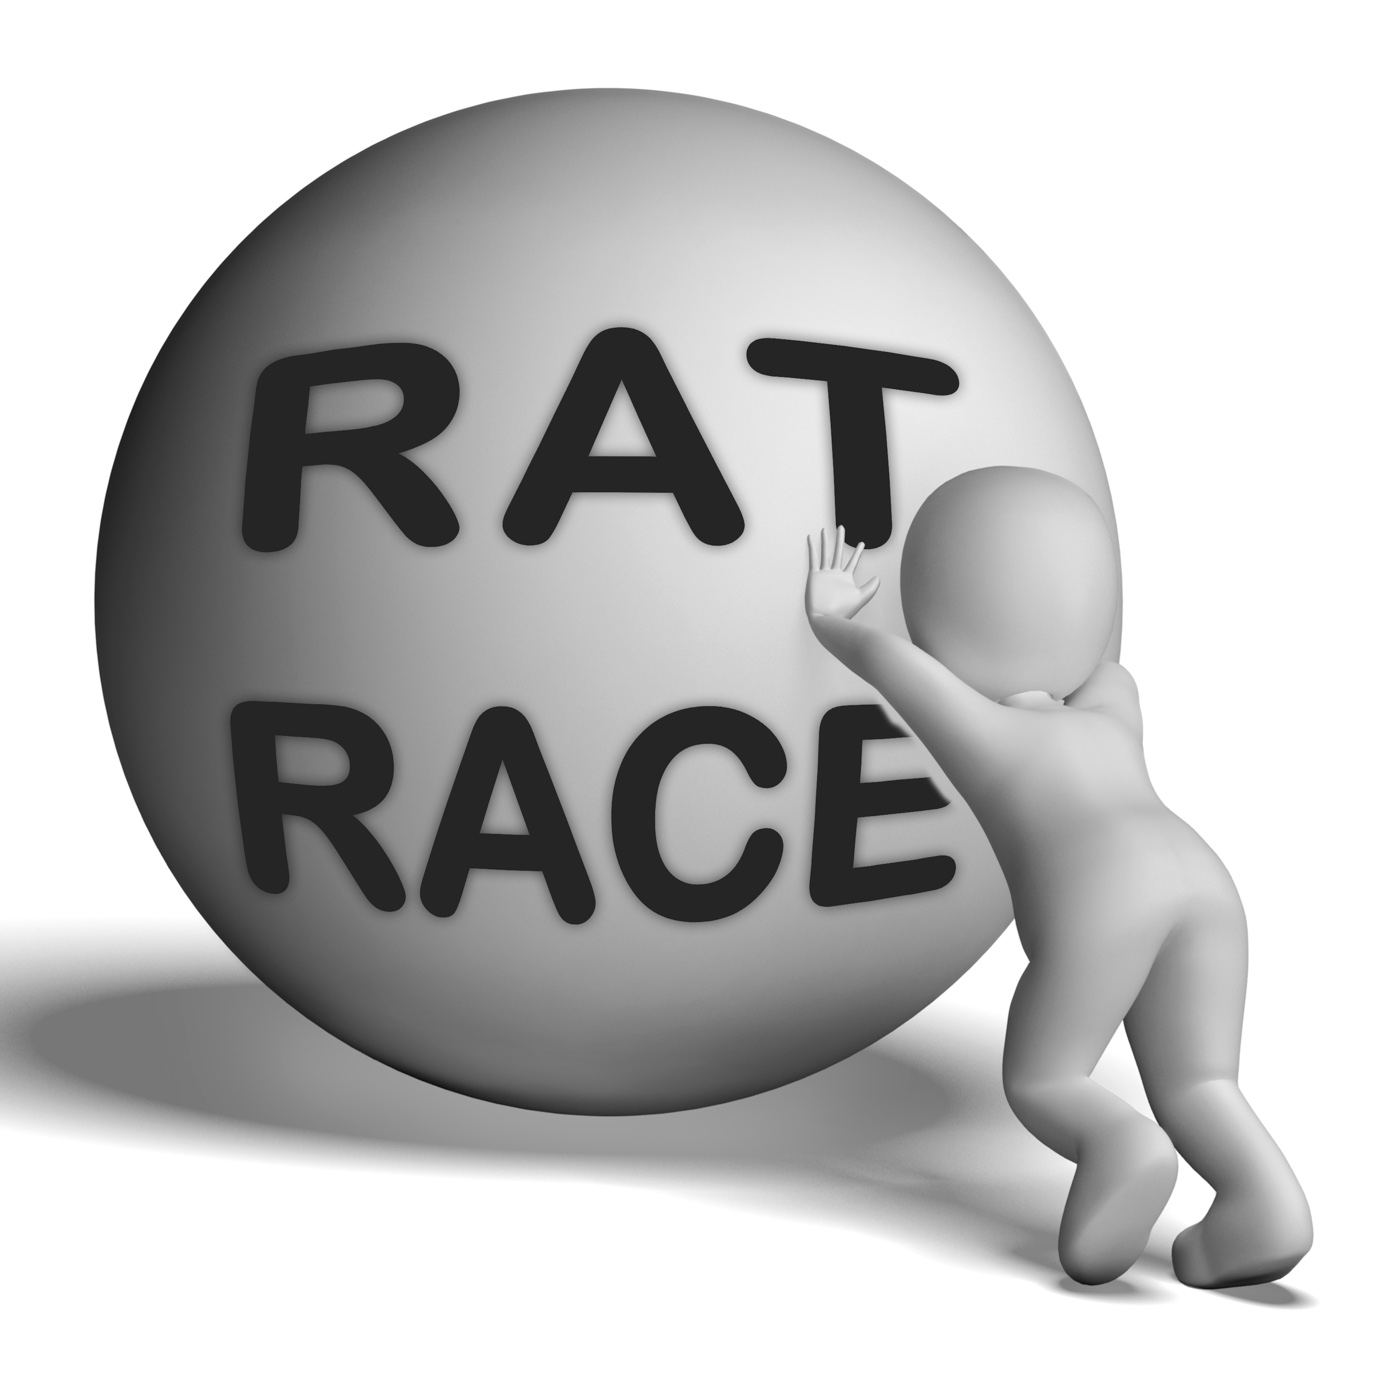 Rat race uphill character shows hectic work competition photo